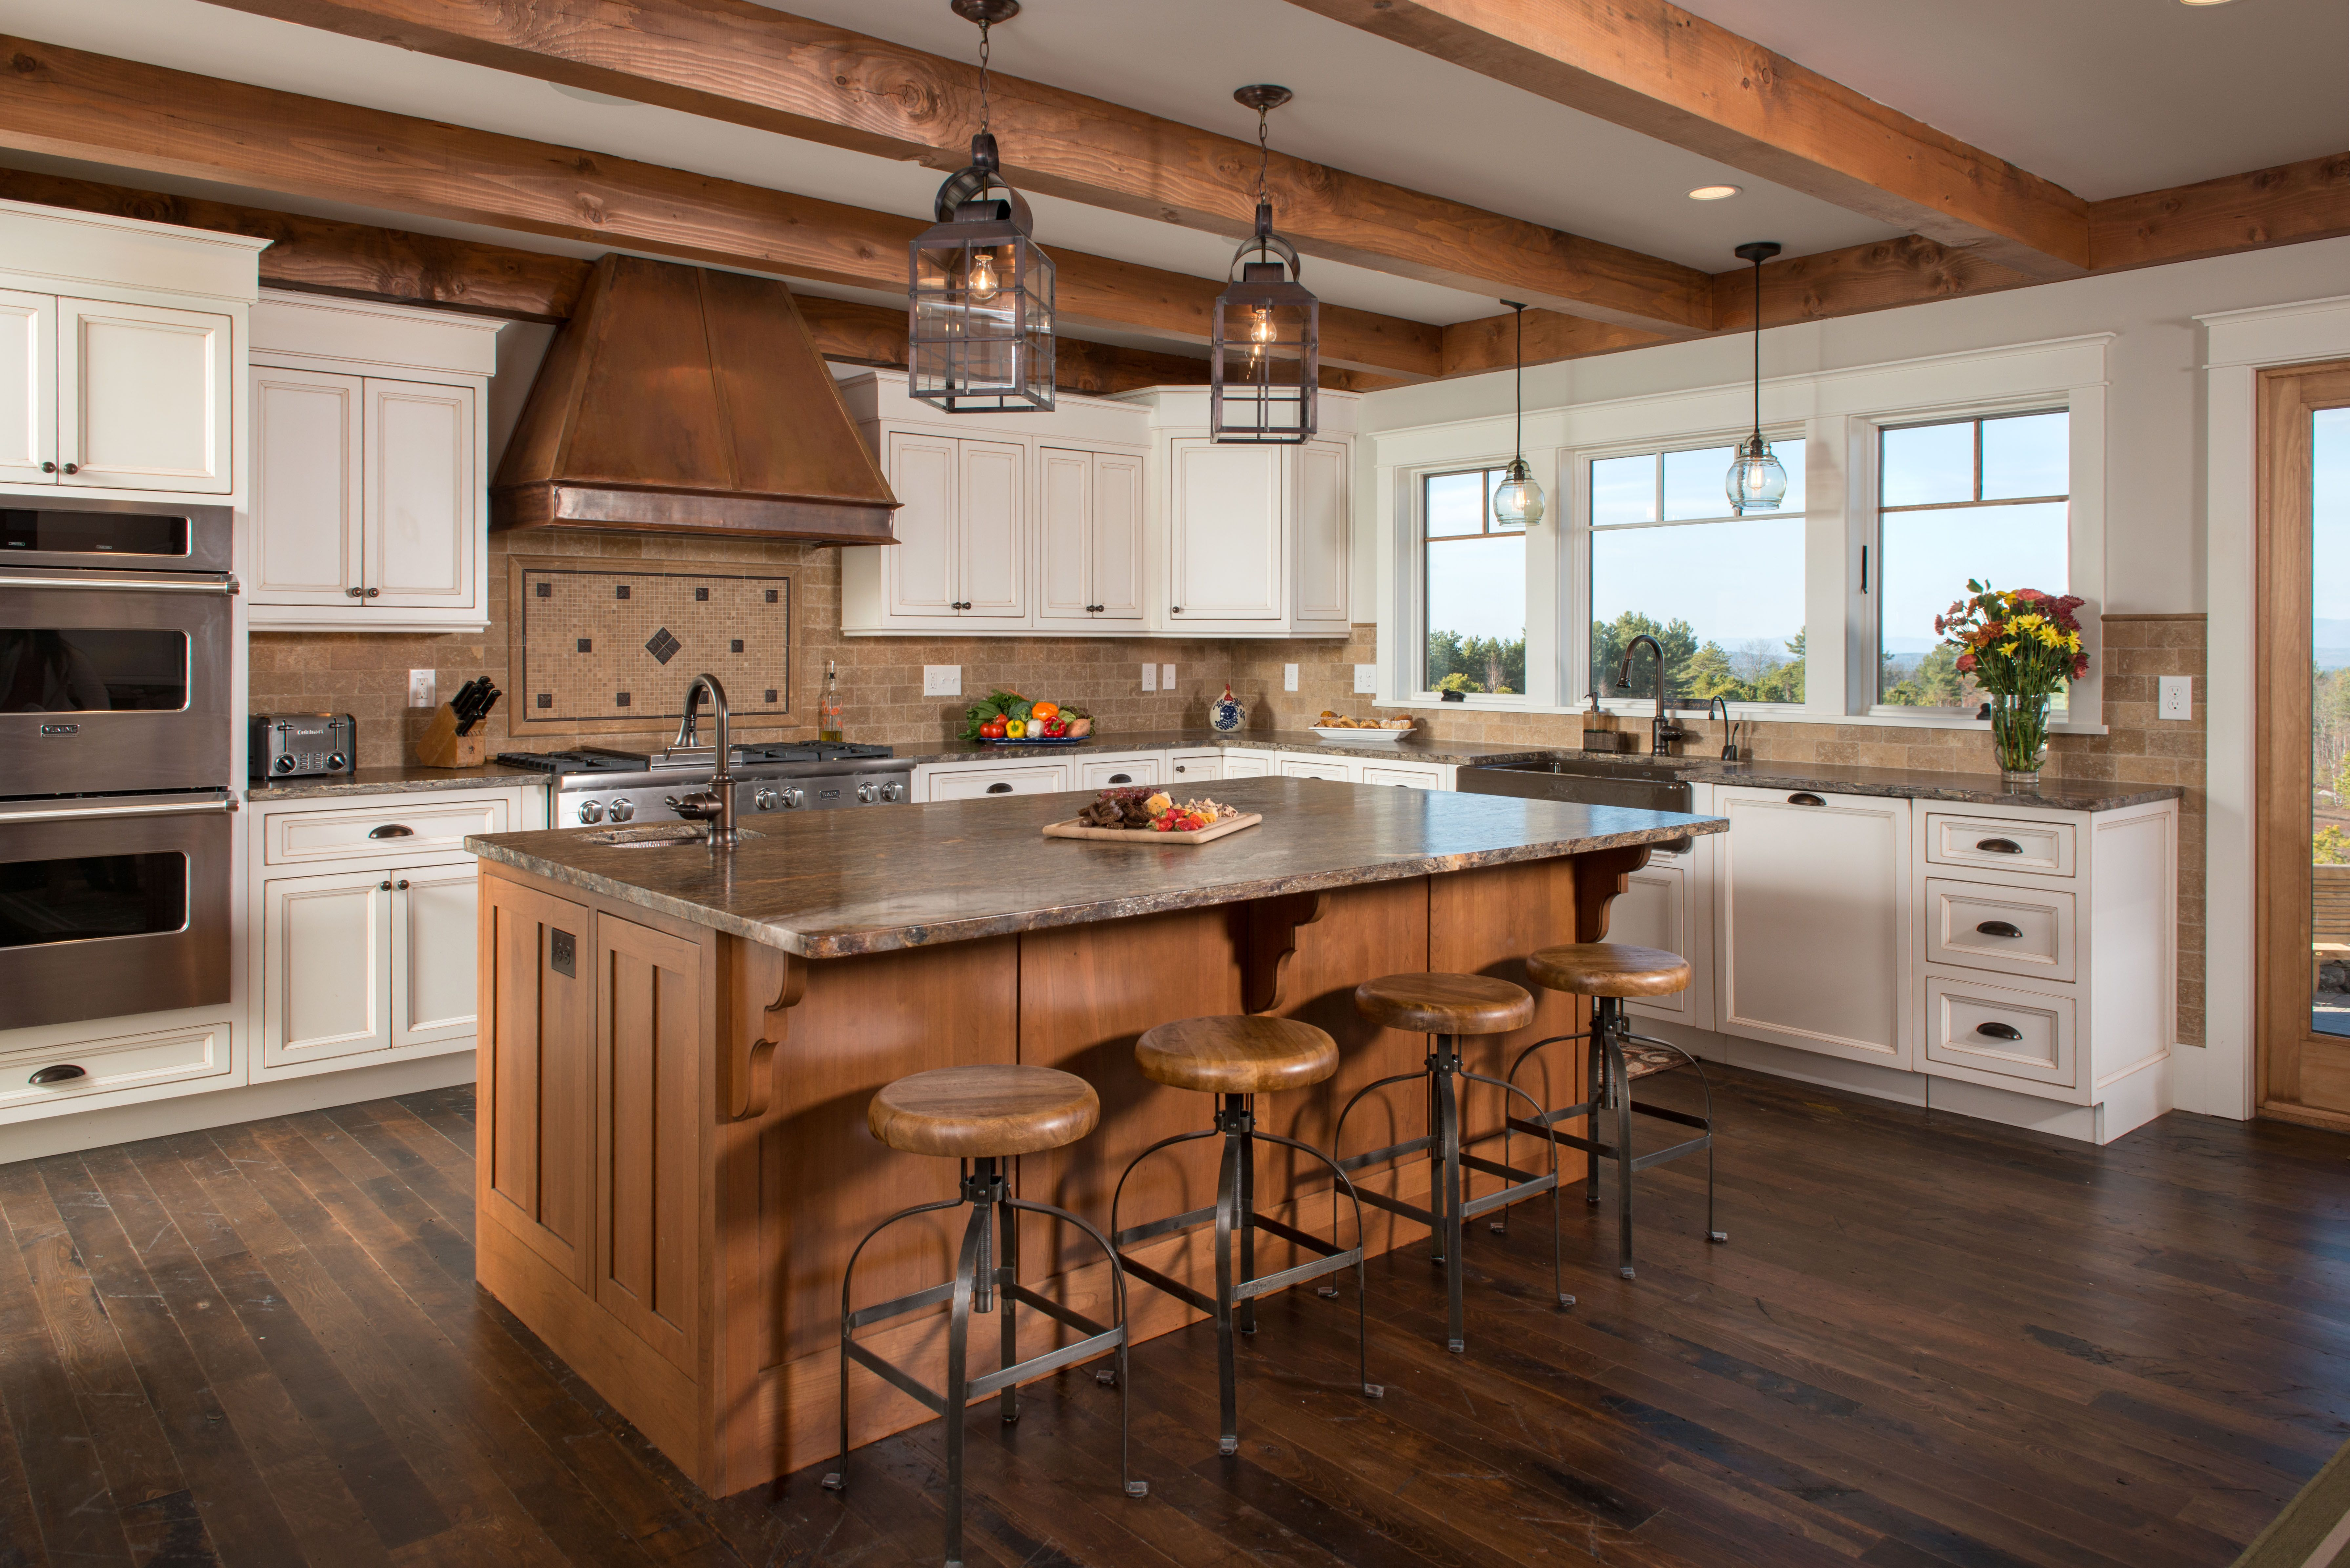 White Cabinets With Med Stain Wood Island Cabinet New Durham Interior Design Kitchen Small Farmhouse Kitchen Design Interior Design Kitchen